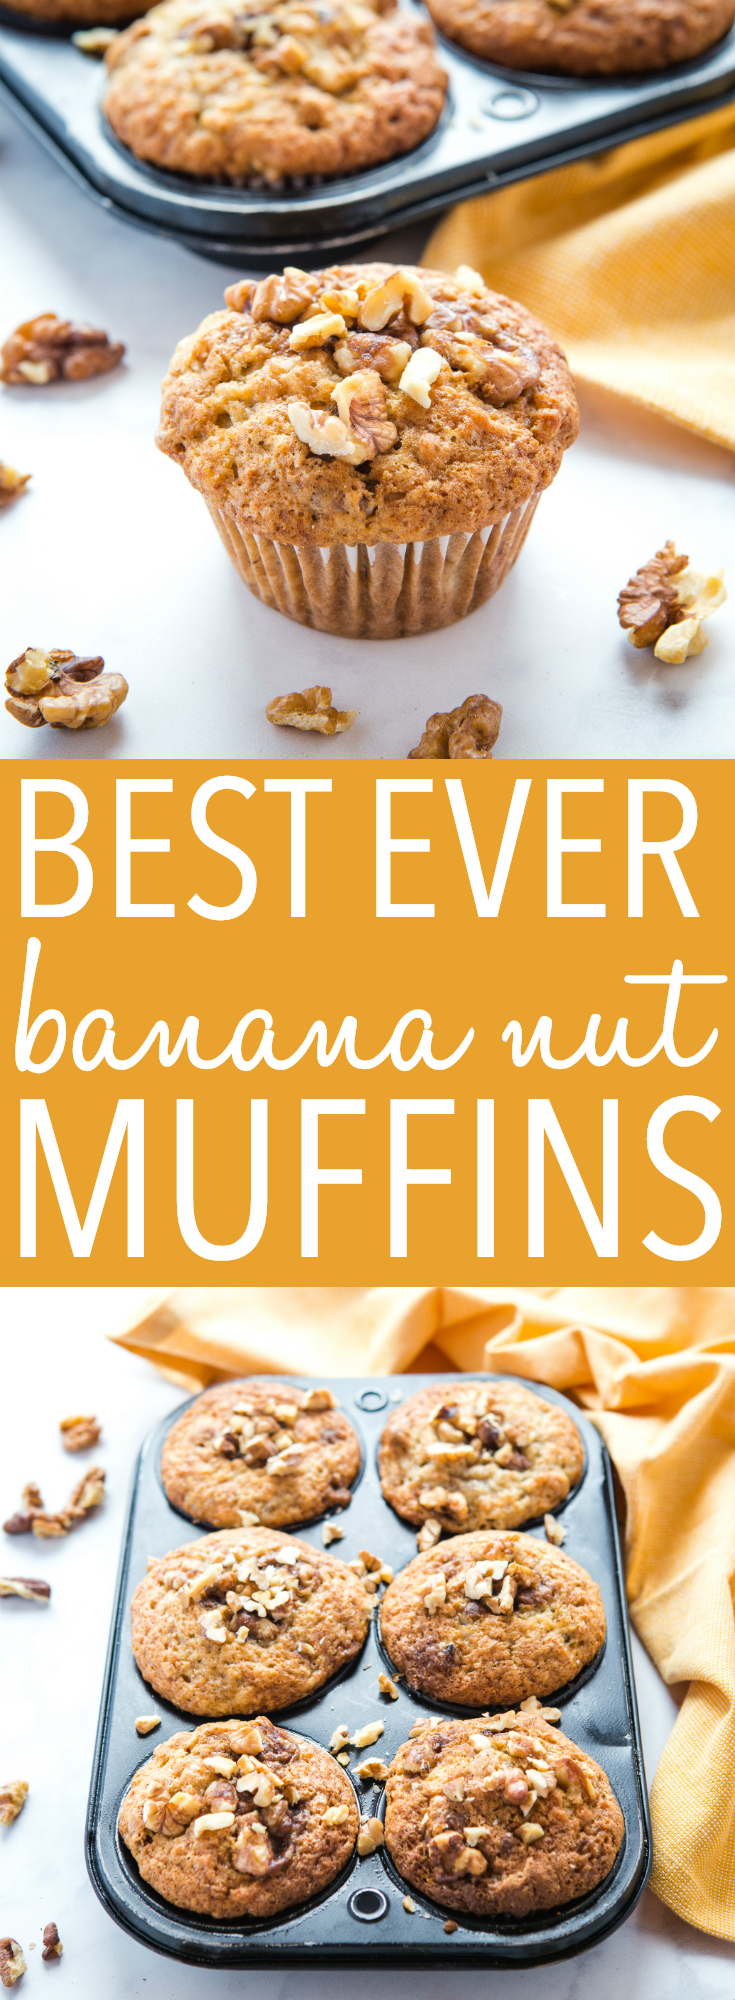 These Best Ever Banana Nut Muffins are the BEST banana muffins you'll ever make, with a delicious and sweet walnut topping! They're crispy on the outside, soft and fluffy on the inside, and they turn out perfectly every single time! Recipe from thebusybaker.ca! #muffins #bestmuffinrecipe #recipe #walnuts #banananutmuffins #nuts #easy #baking #bakingforbeginners via @busybakerblog